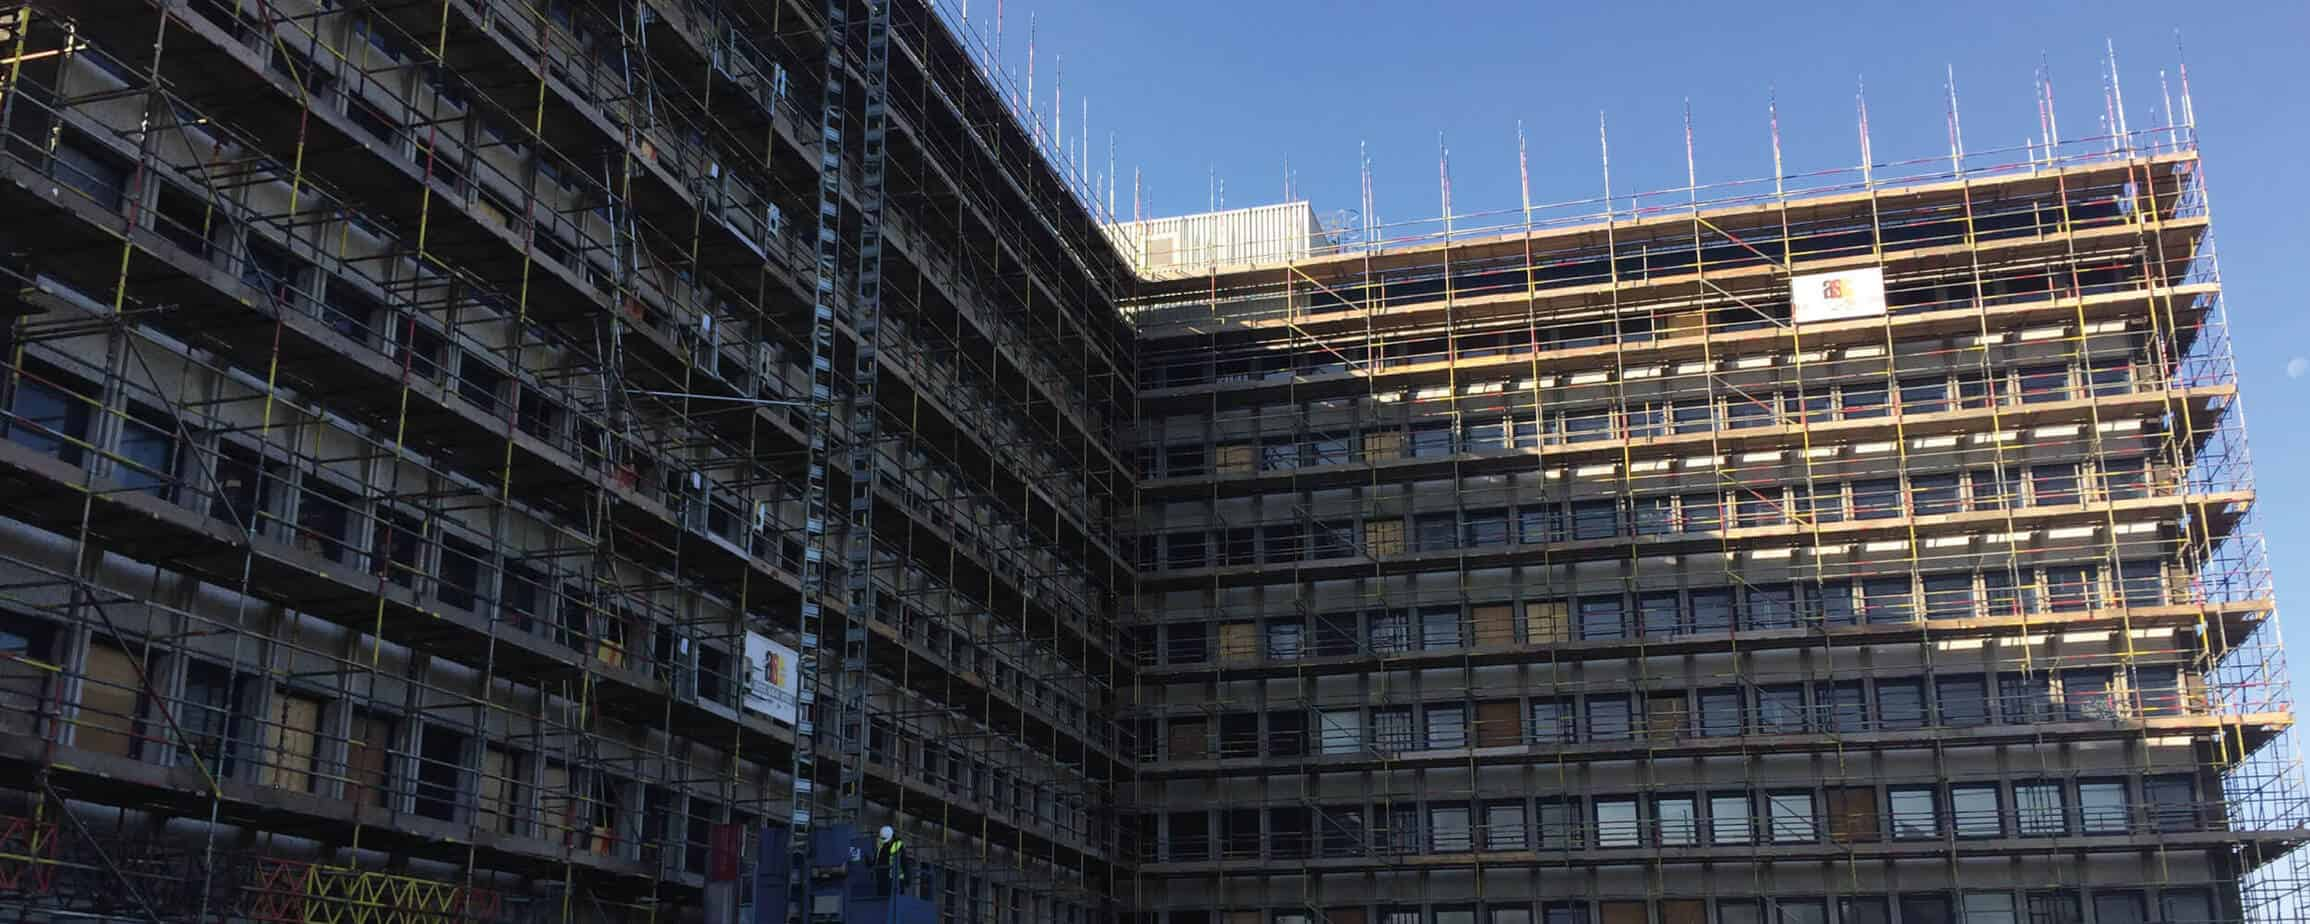 Scaffolding Contractors Edinburgh